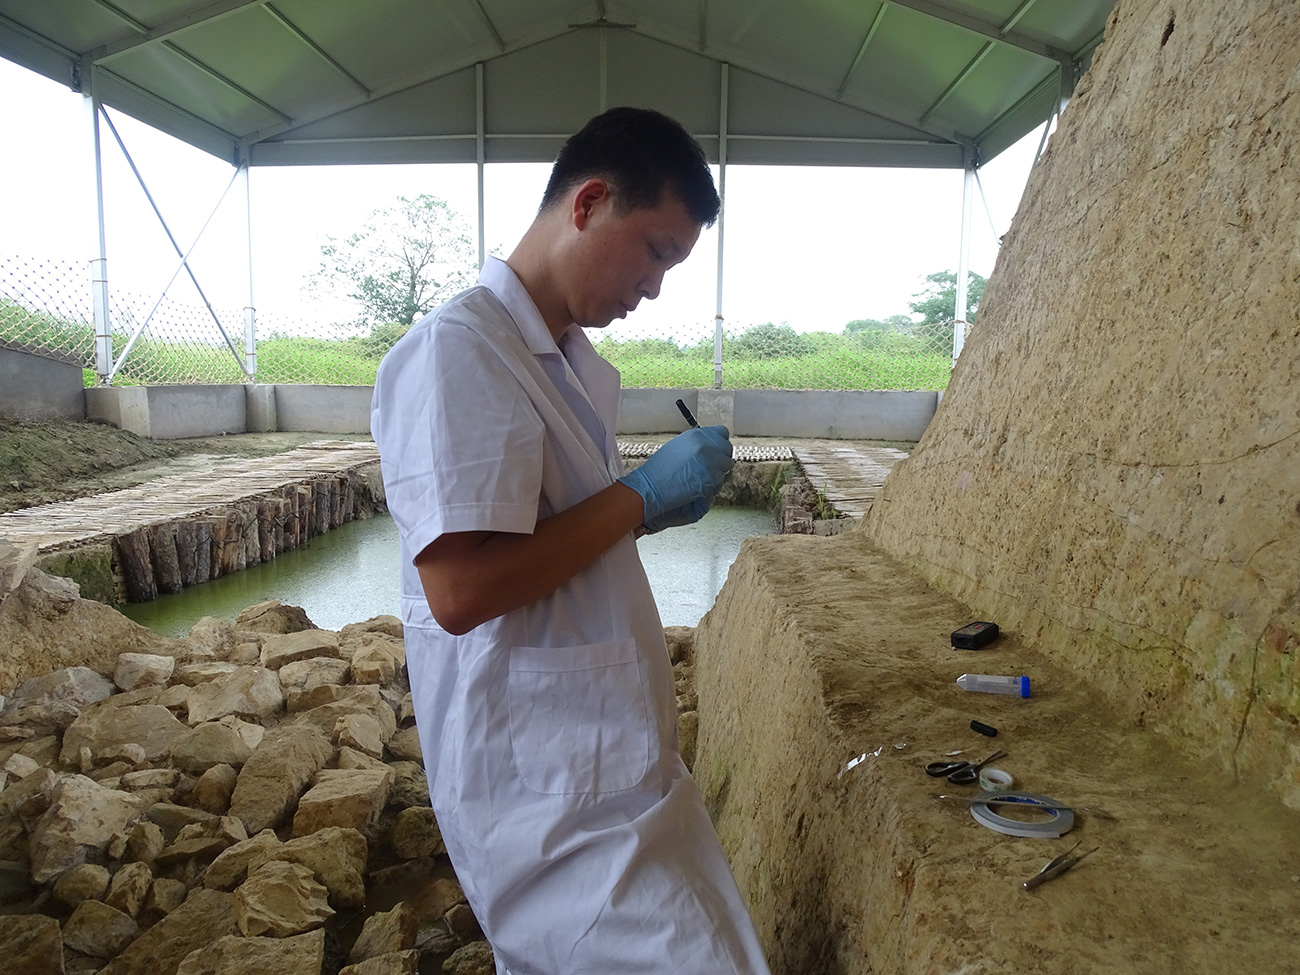 Cui Biao, a young Chinese man, wears white coveralls and blue gloves as he collects samples at an archaeological ruin.